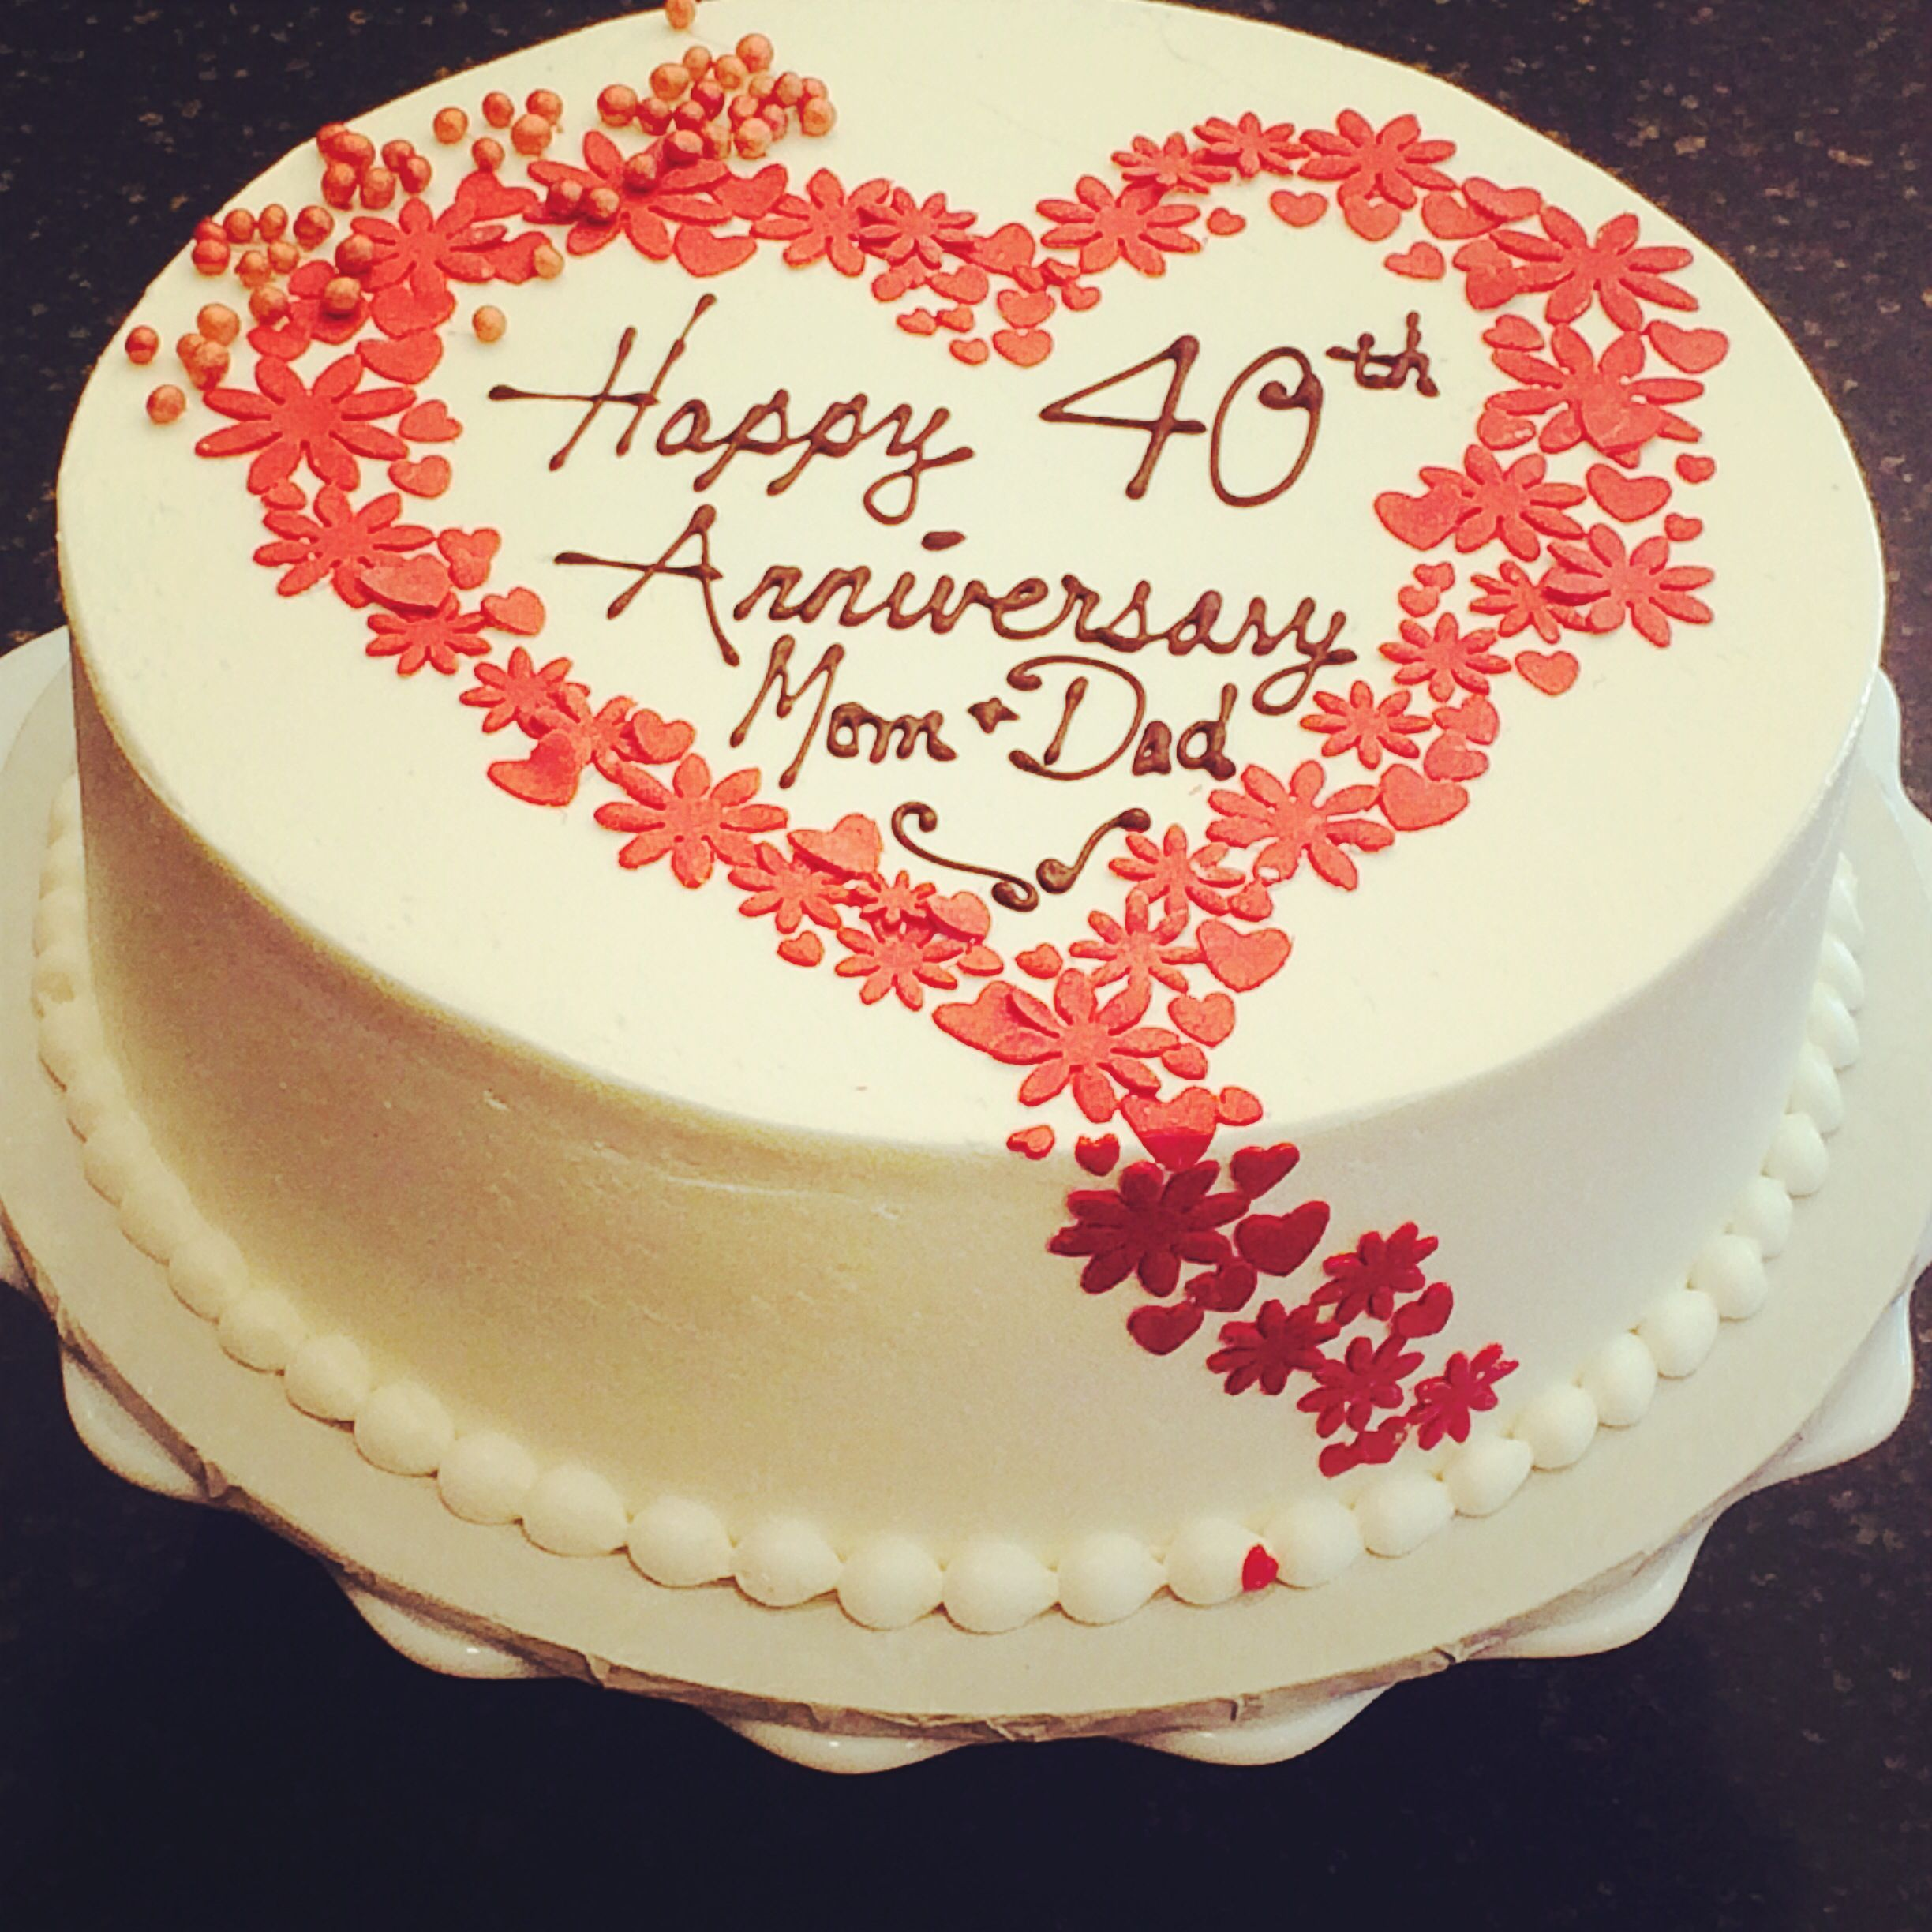 Cake Ideas For One Year Anniversary : Red velvet ruby 40th anniversary cake. Newleafpastries.com ...